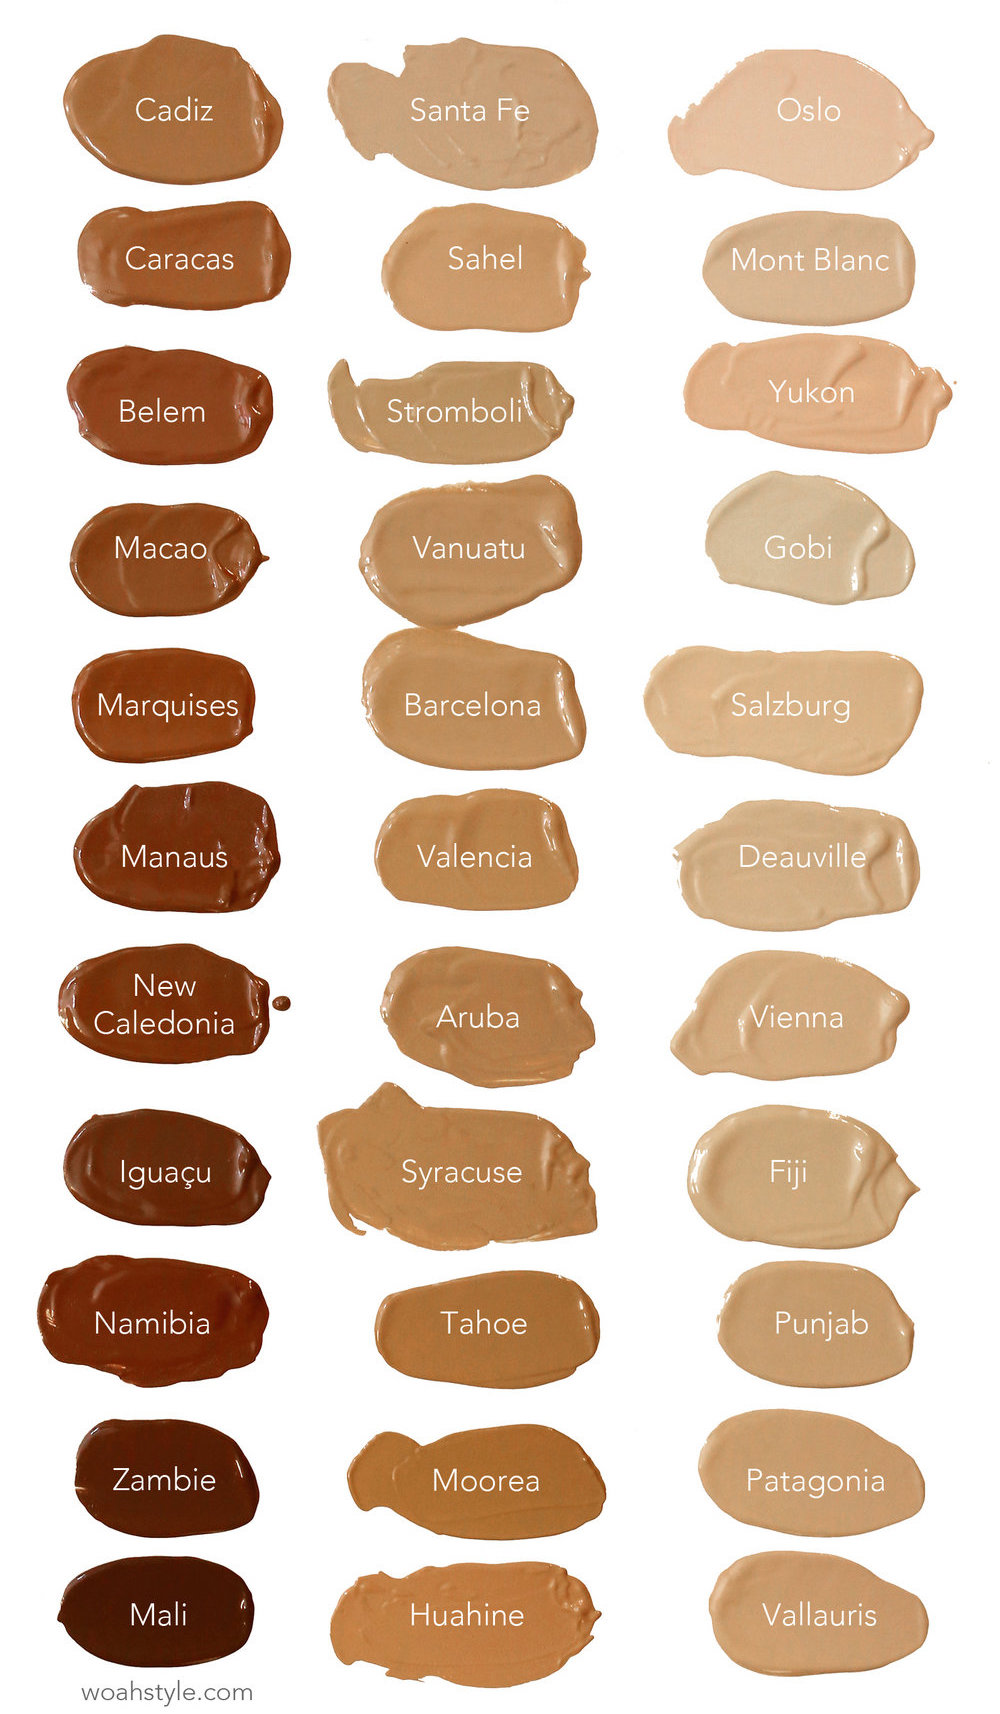 NARS+Radiant+Longwear+Foundation+Review+and+swatches+-+full+collection-+woahstyle.com-1.jpg